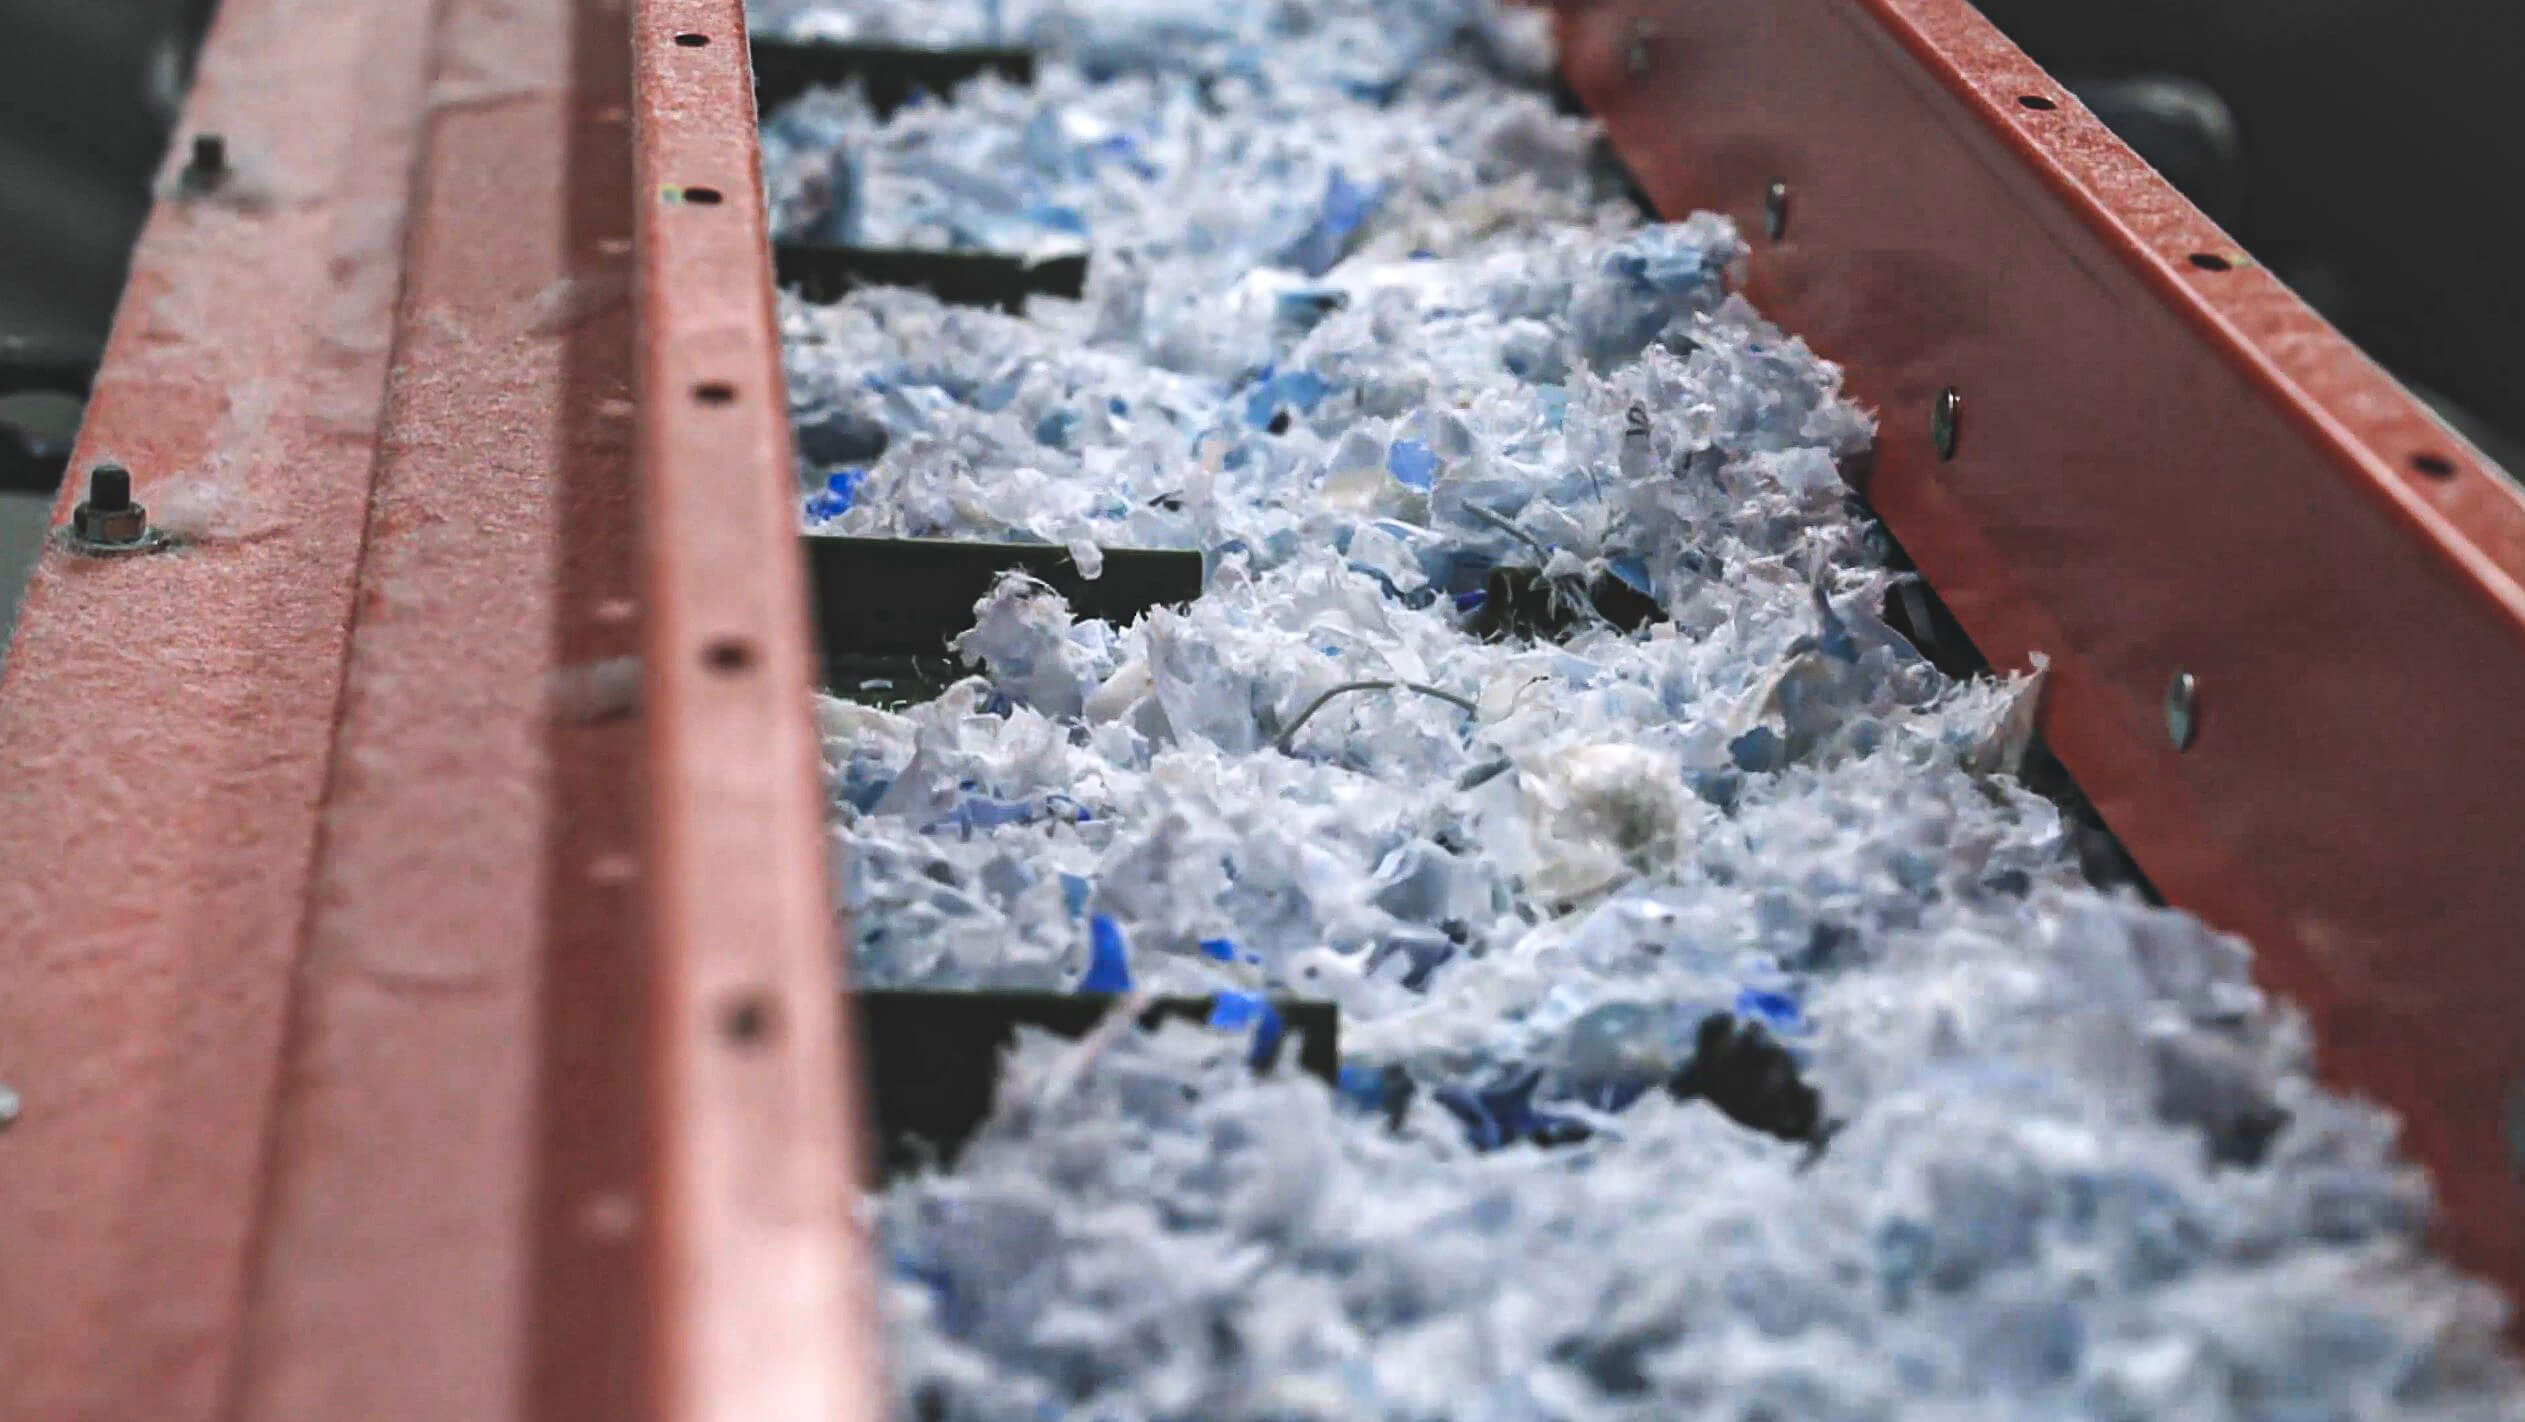 shredded plastic on conveyor belt